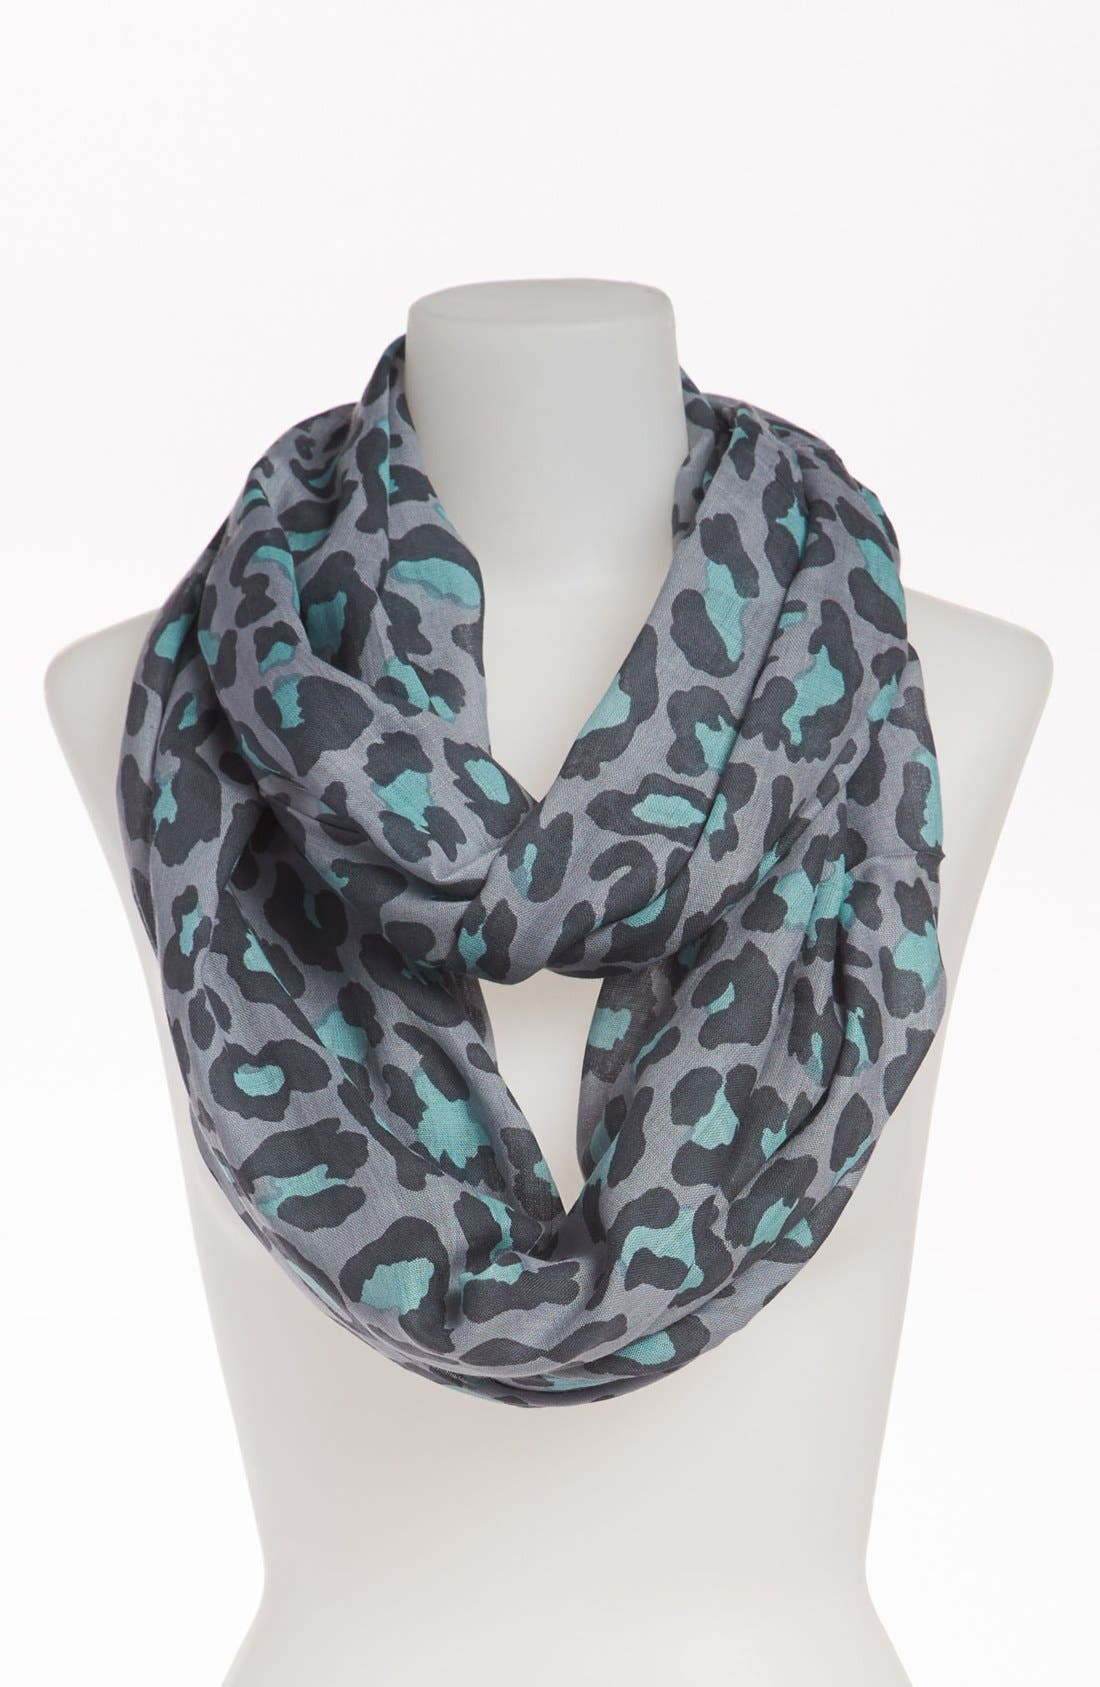 Alternate Image 1 Selected - BP. Leopard Print Infinity Scarf